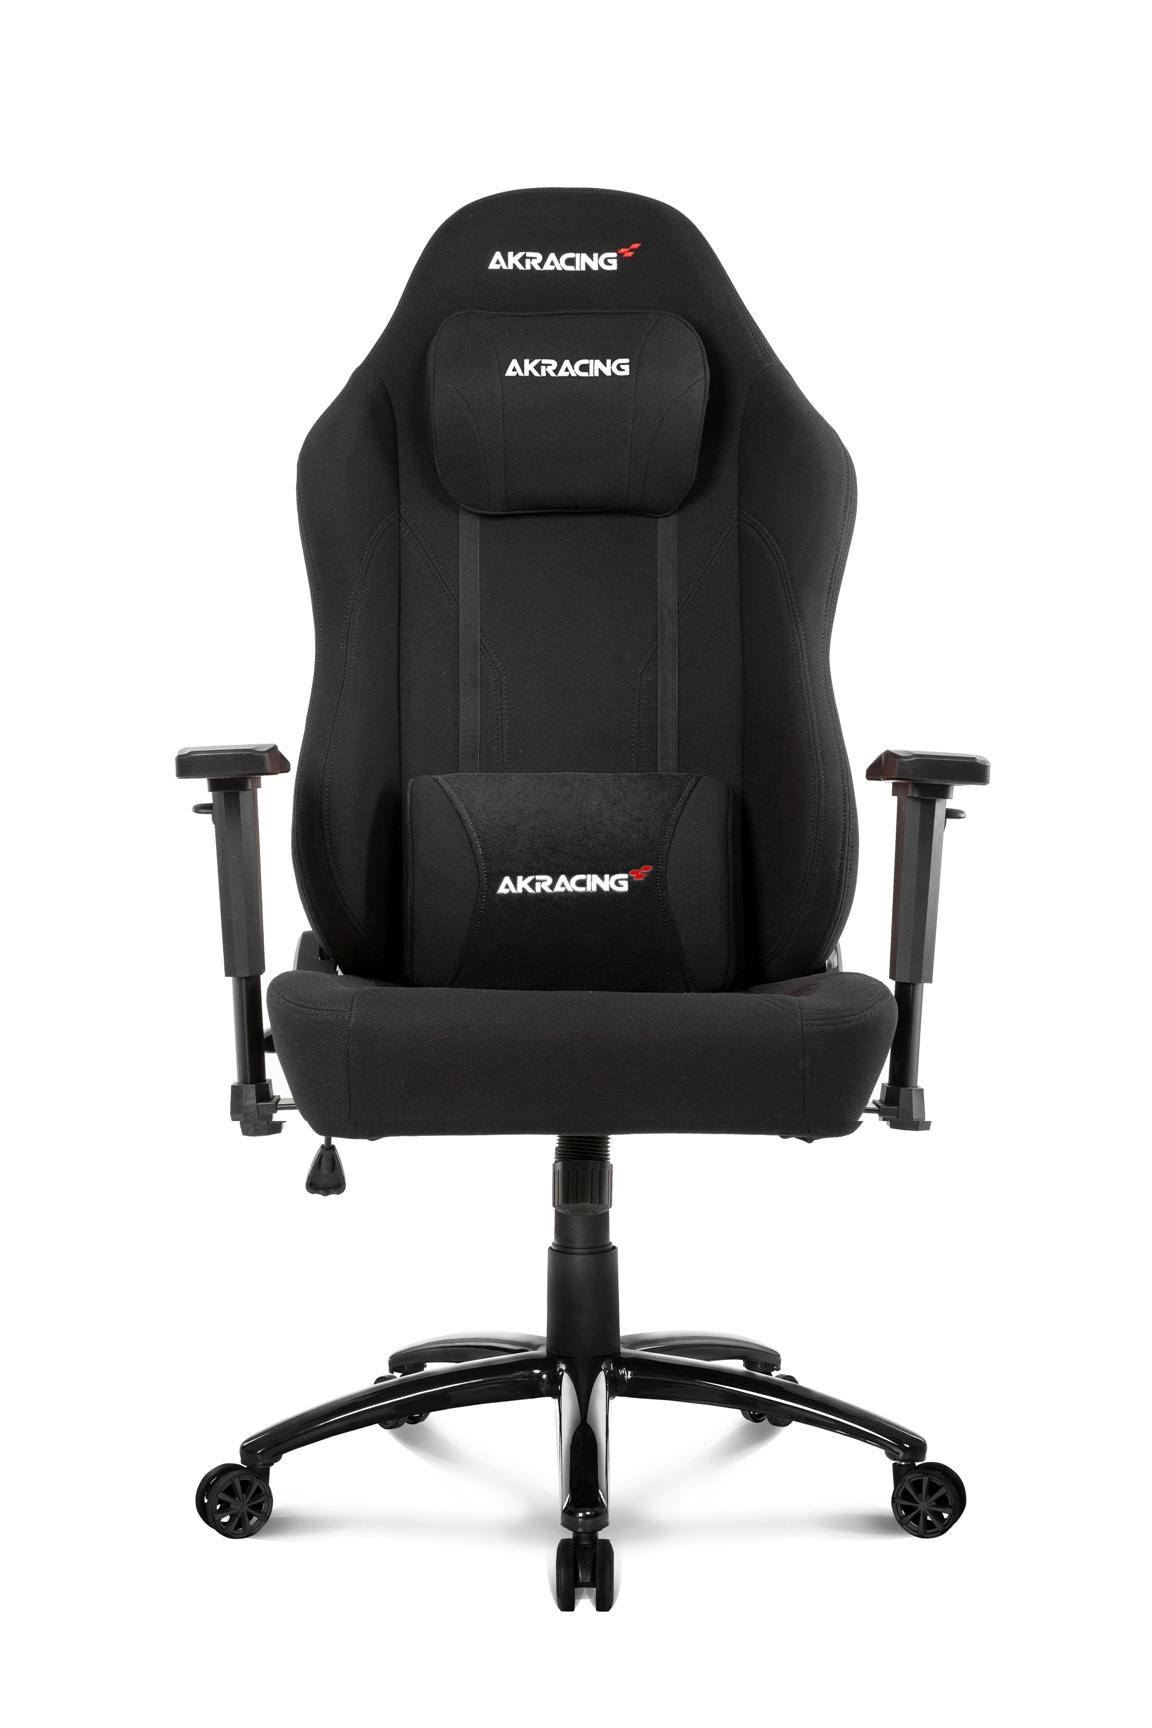 AKRacing Opal Chair Free Delivery and Installation